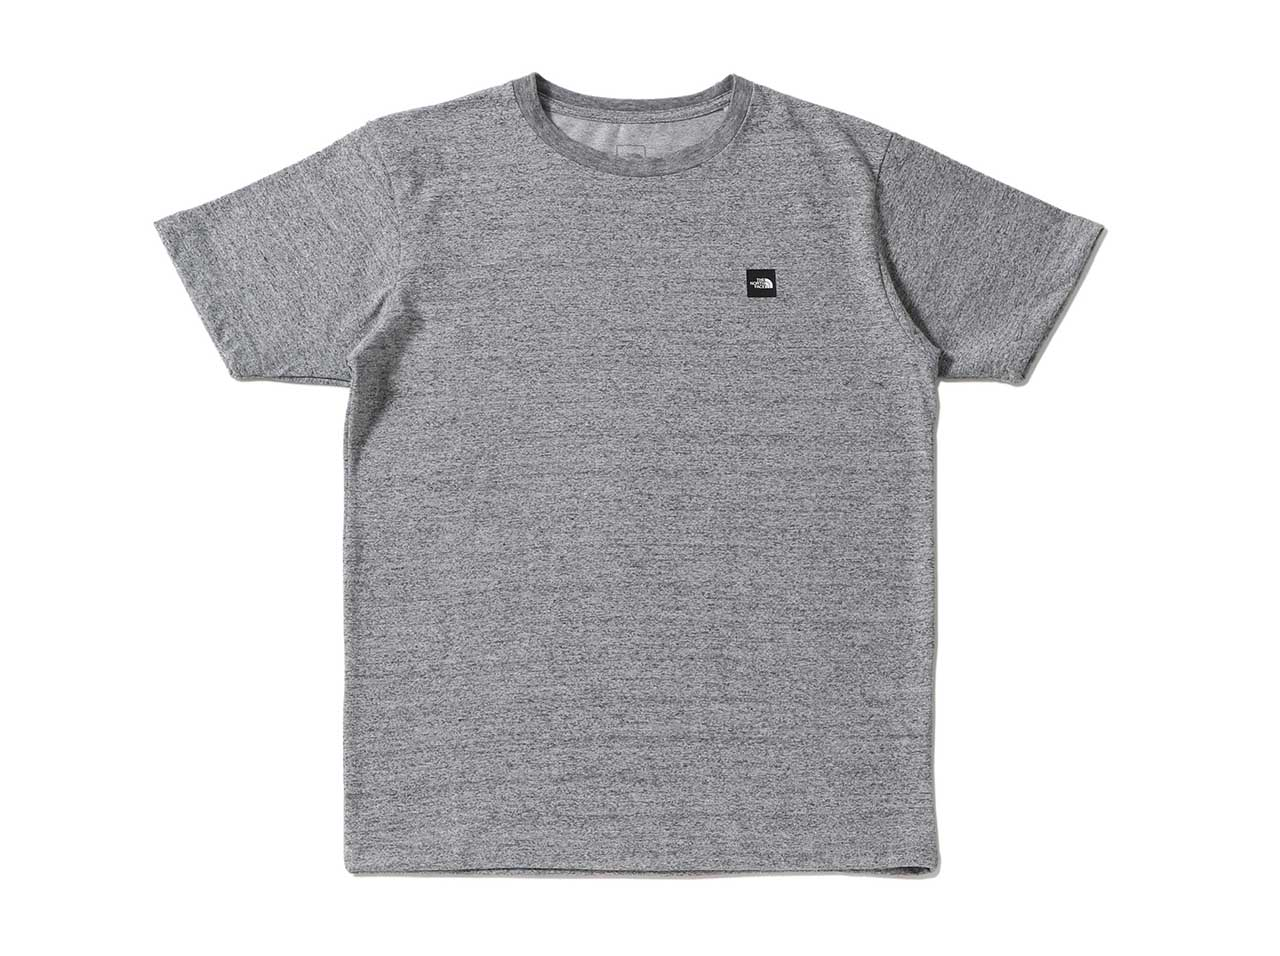 【10%OFF】THE NORTH FACE S/S Small Box Logo Tee - NT32052